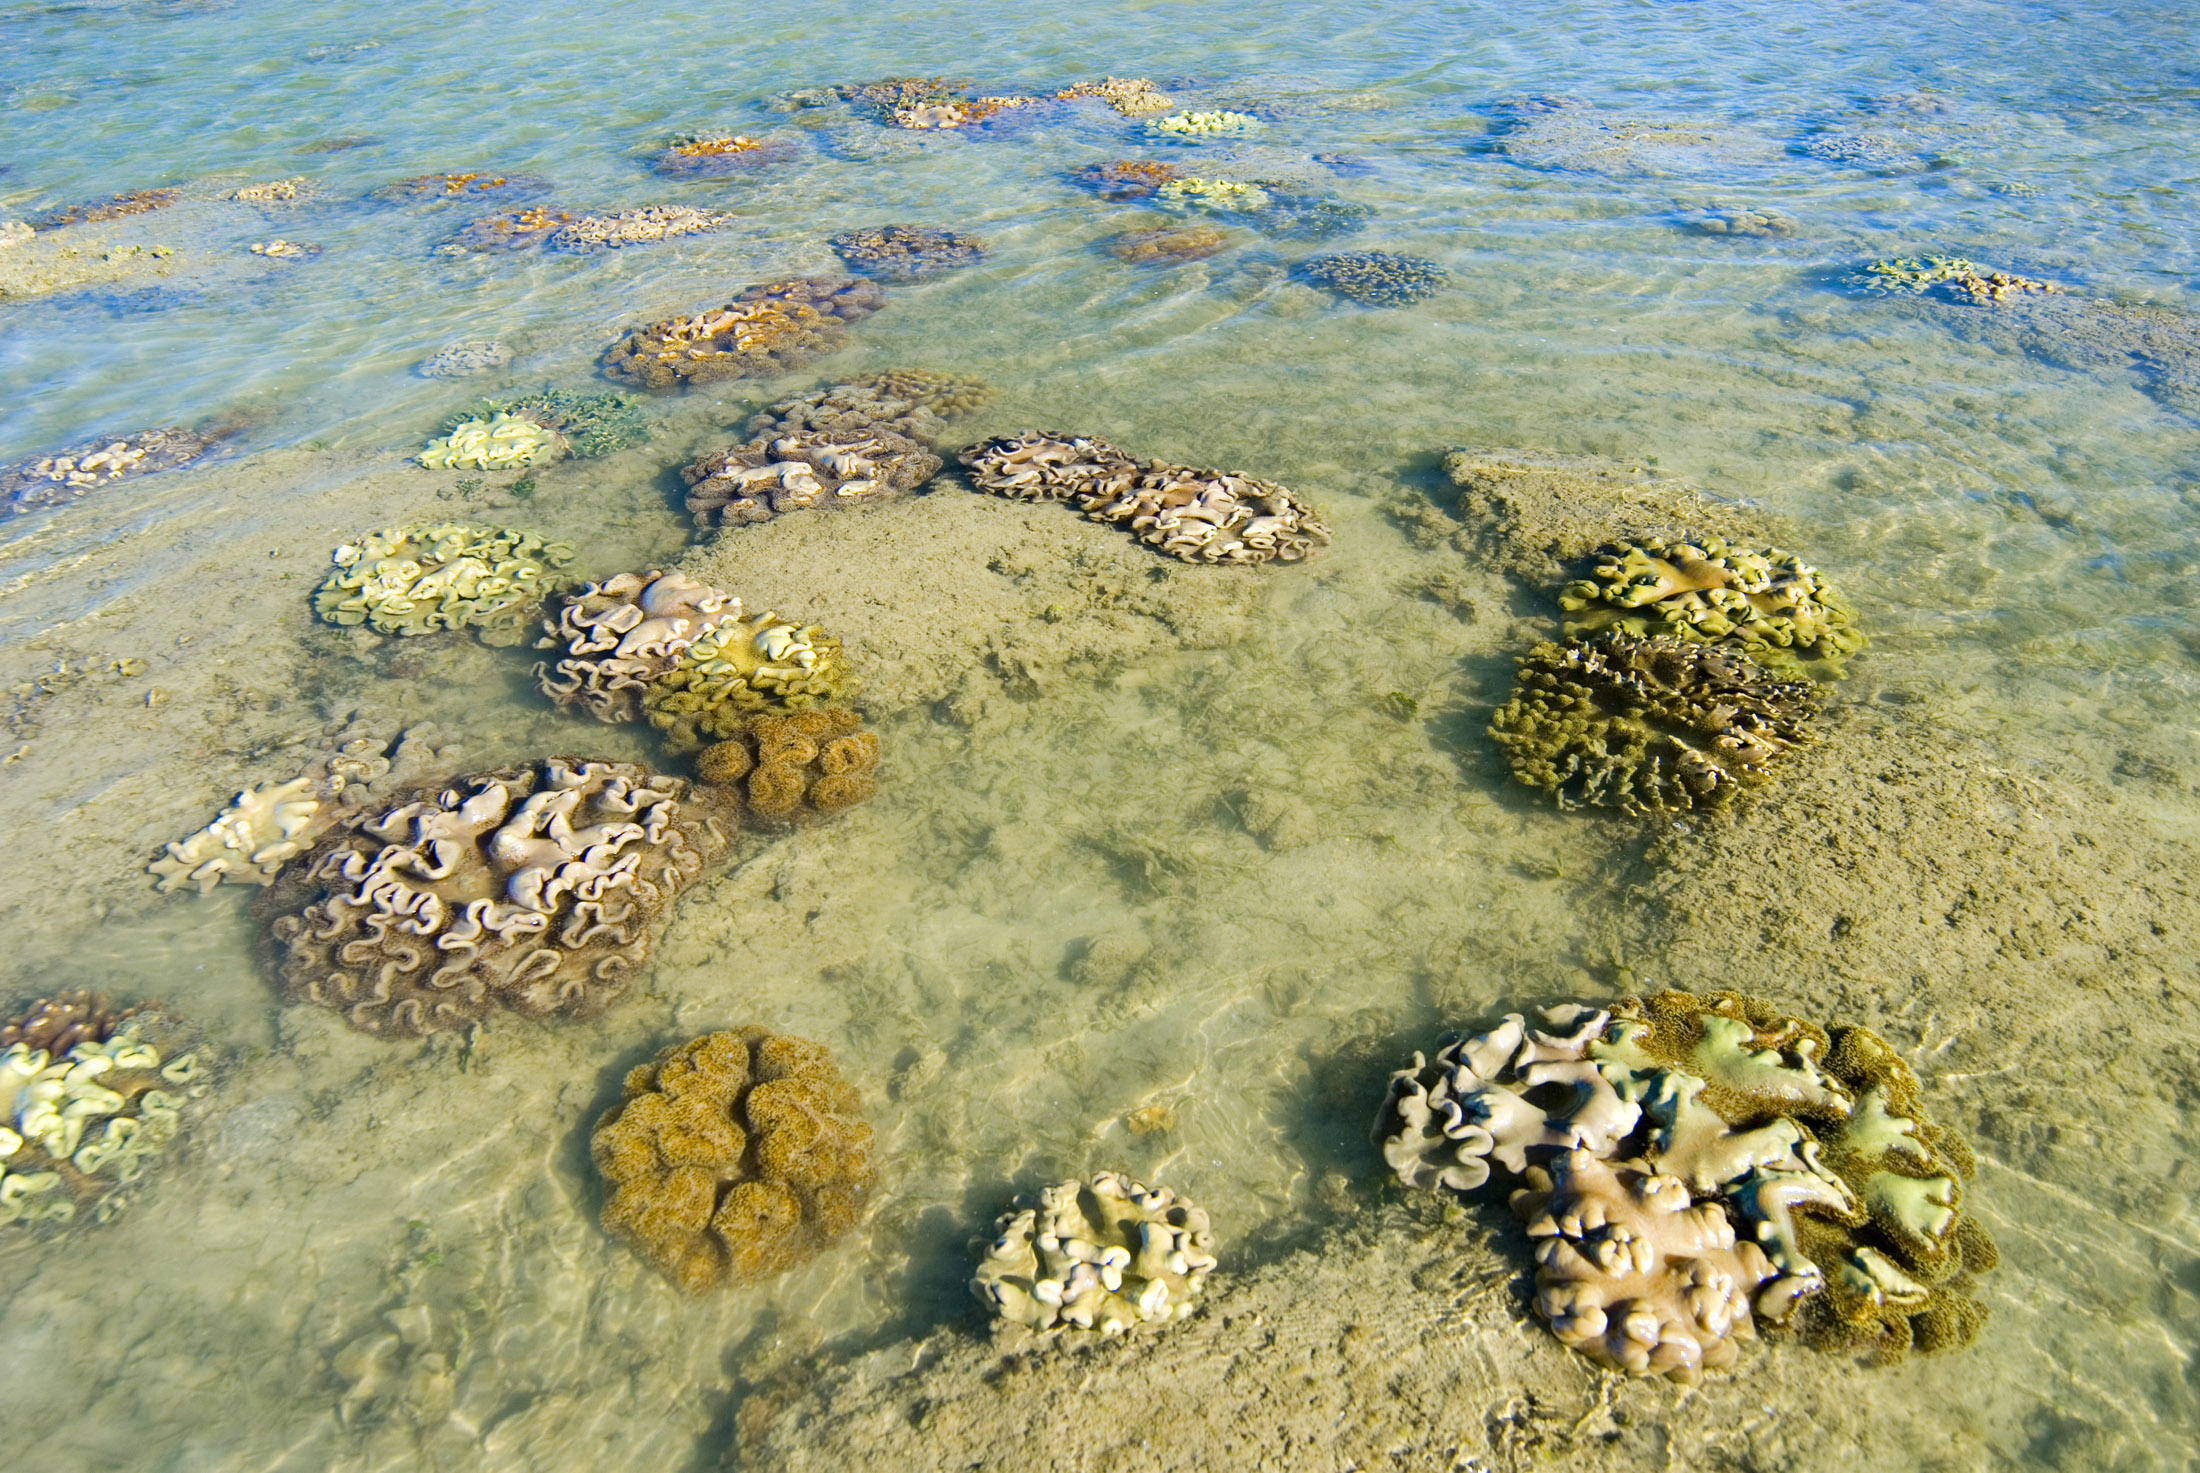 colorful corals in shallow water during low tide